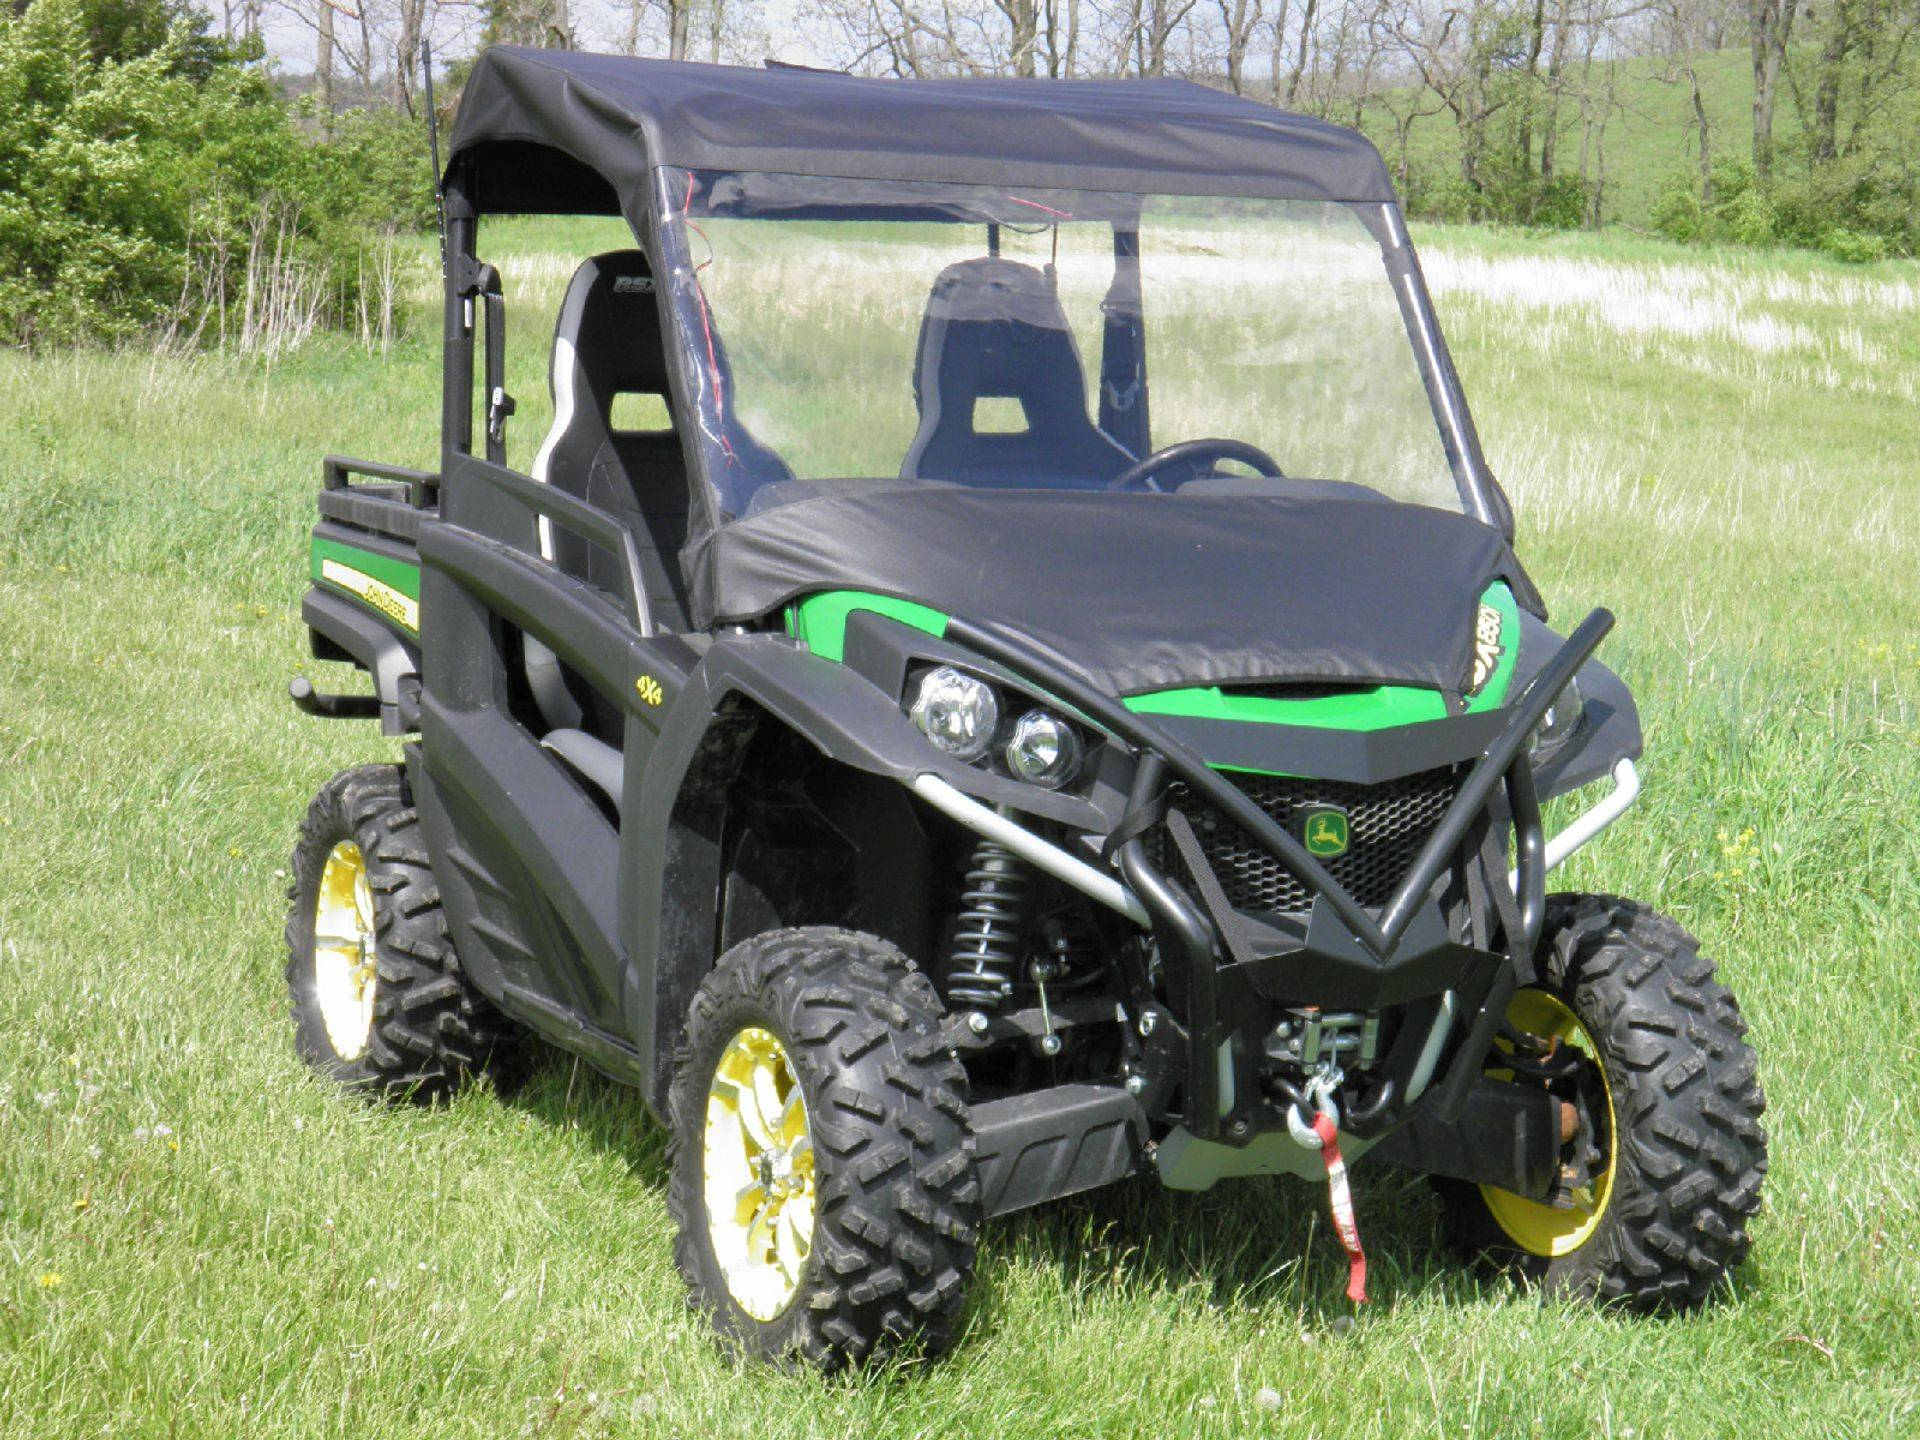 John Deere Gator RSX 850i, 860i, 860e, 860m parts & accessories